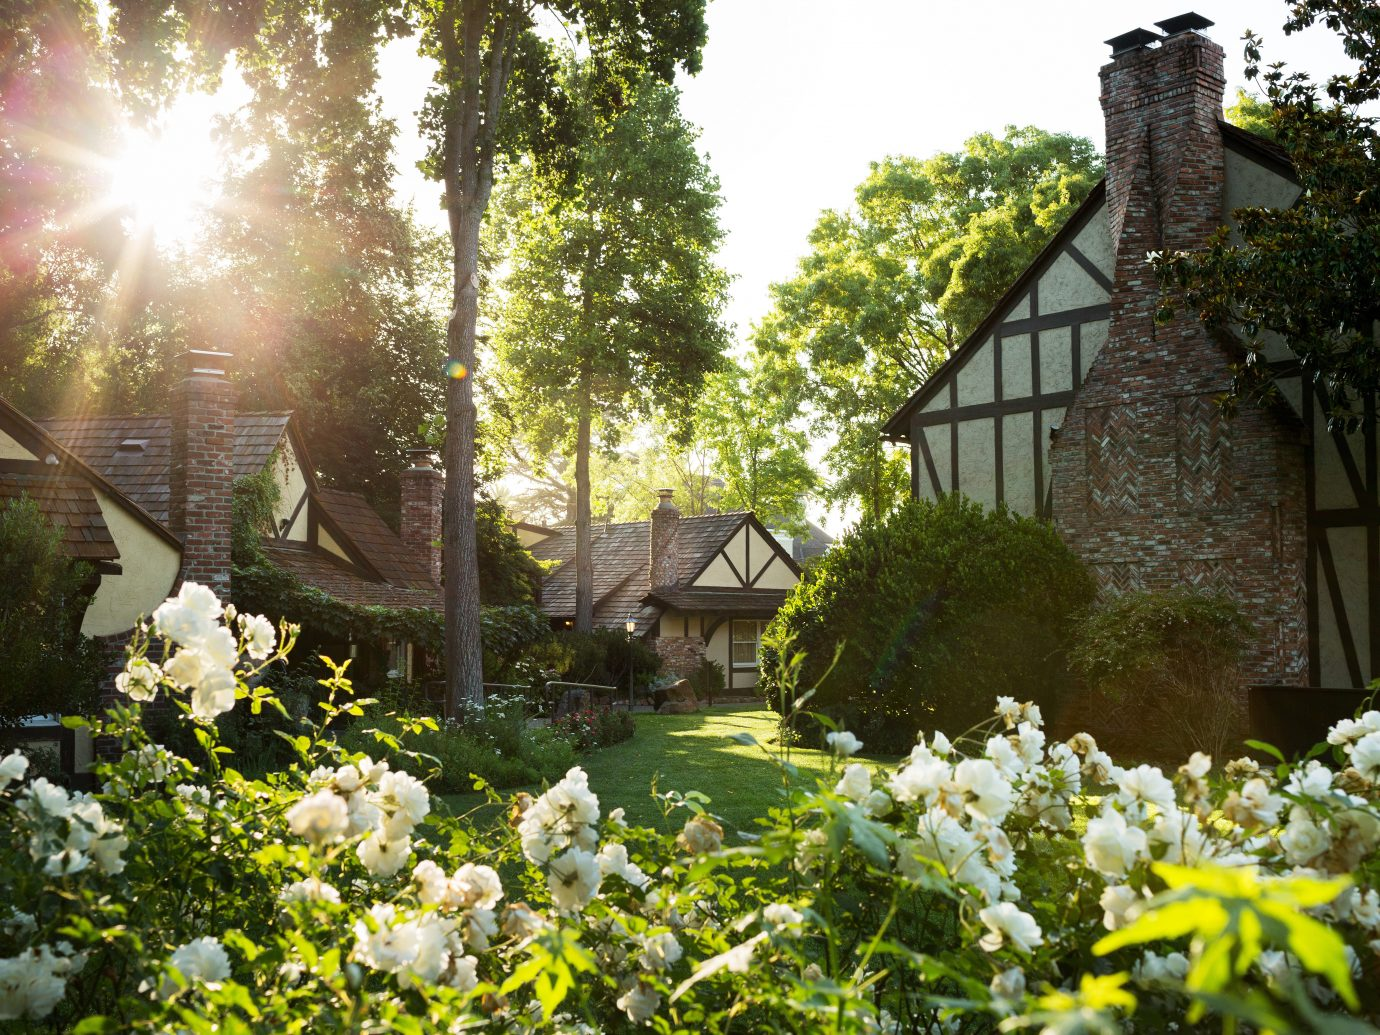 Exterior Garden Grounds Inn Romantic tree flower outdoor plant house backyard yard estate lawn sunlight cottage Courtyard bushes surrounded day